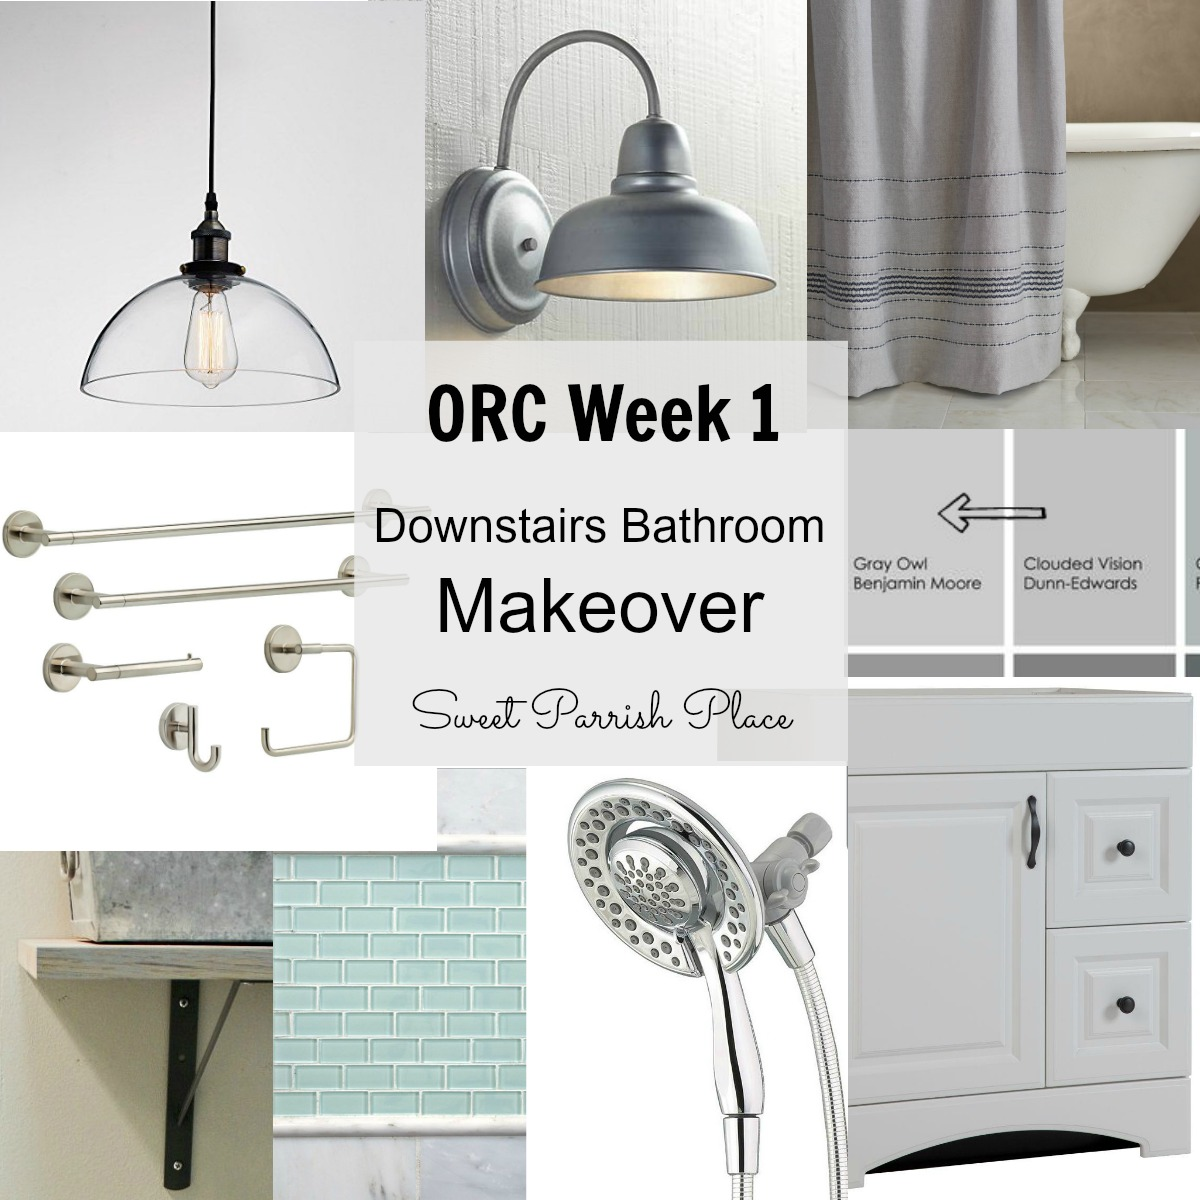 Downstairs bathroom makeover plans